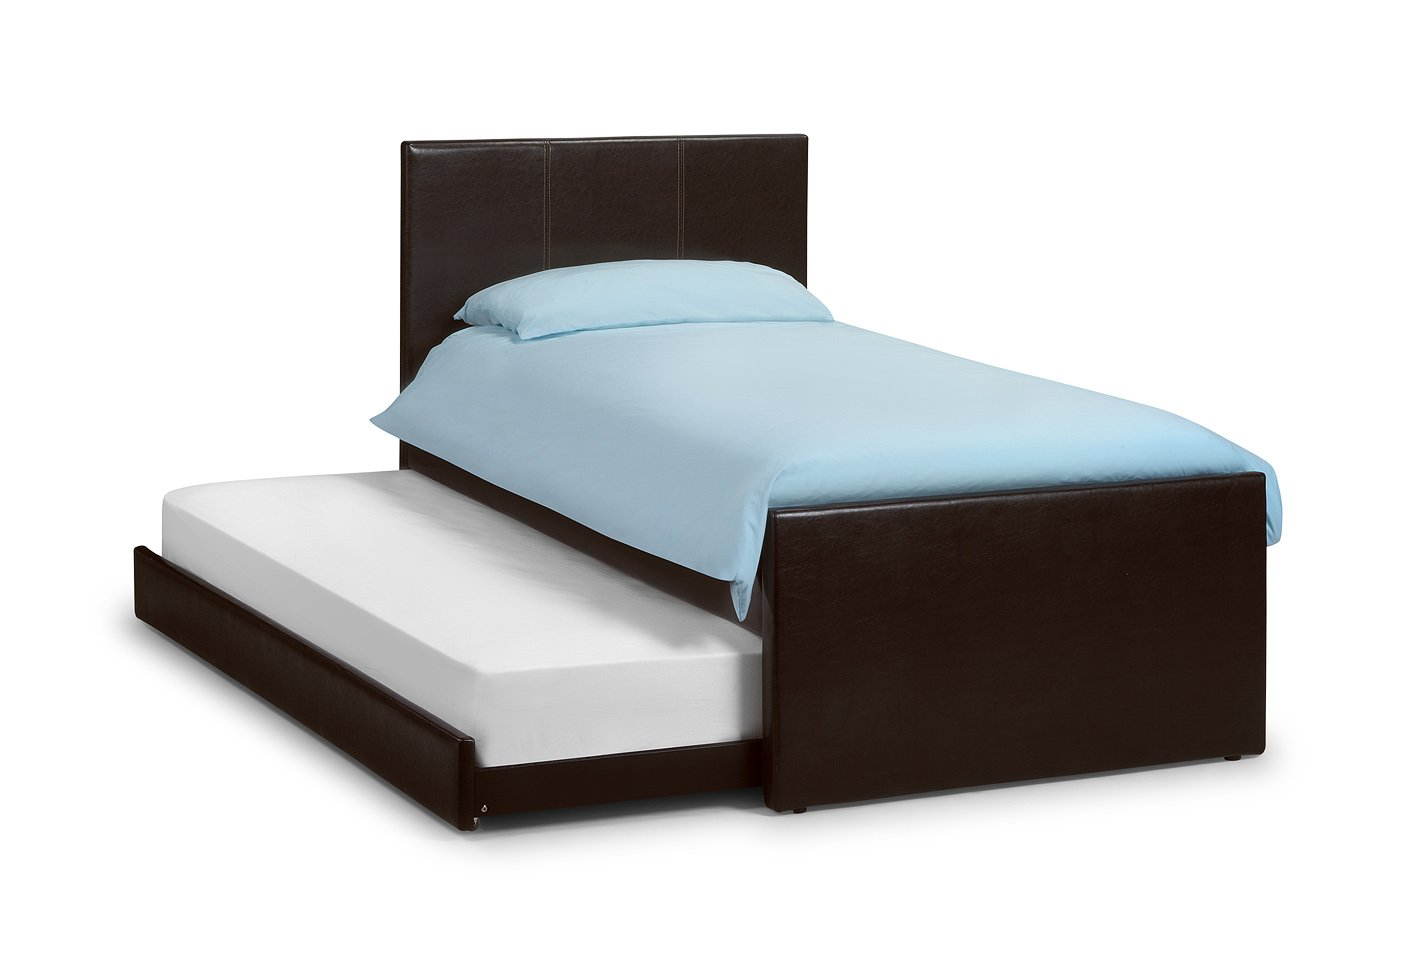 Exceptional Happy Beds Cosmo Brown Guest 3u0027 Single Quality Leather Pull Out Guest Bed  With 2x Luxury Spring Mattress: Amazon.co.uk: Kitchen U0026 Home